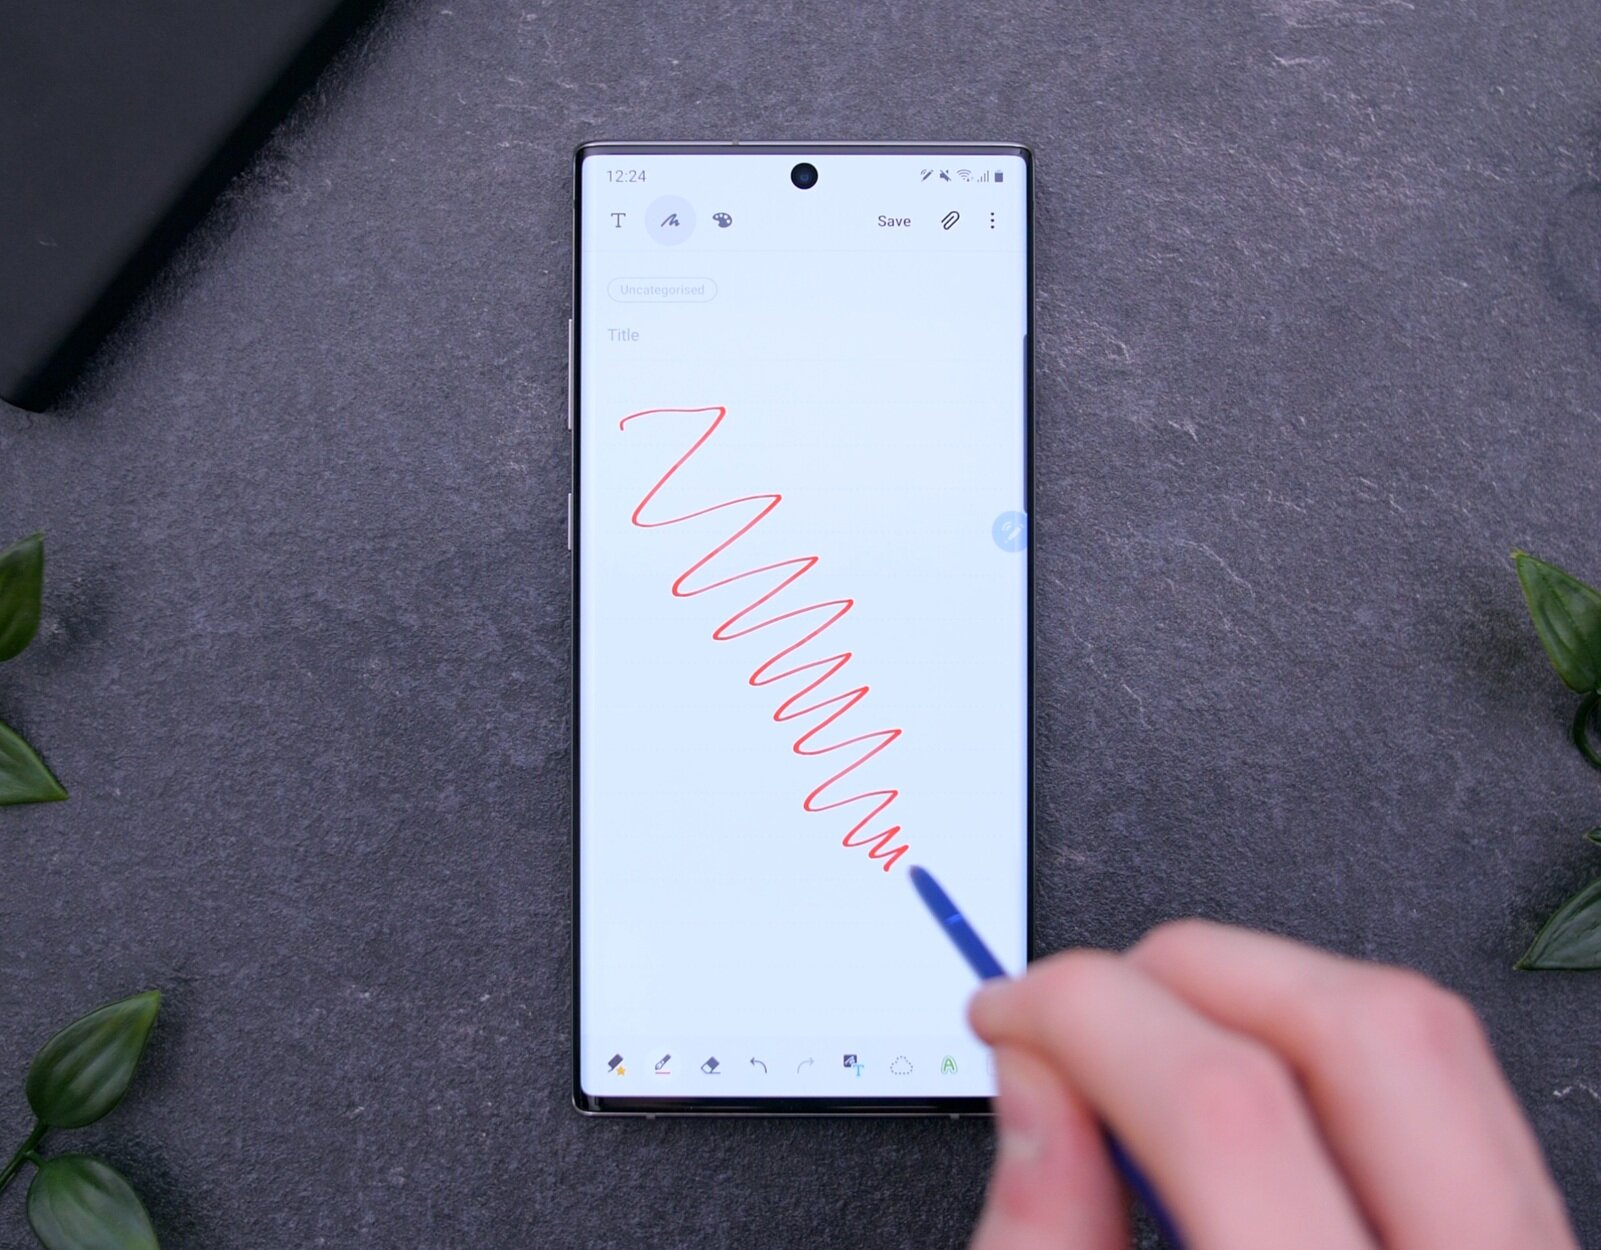 The S-Pen is certainly a useful tool but may go unused after a while by some consumers